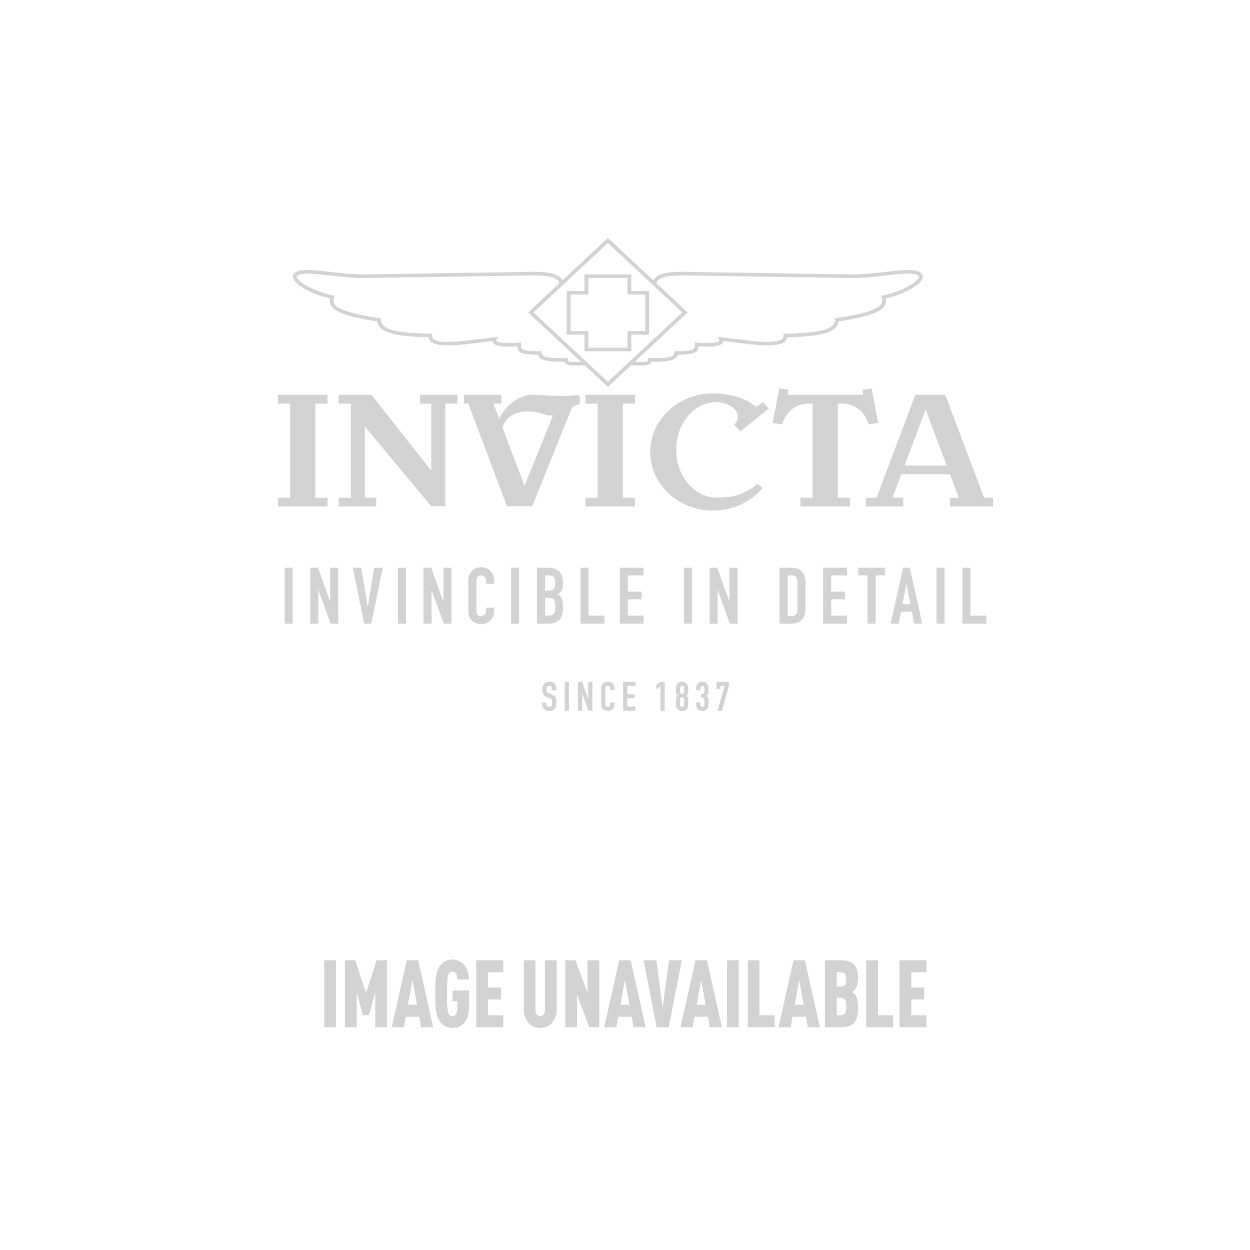 Invicta S1 Rally Quartz Watch - Stainless Steel case with Black tone Leather band - Model 16019